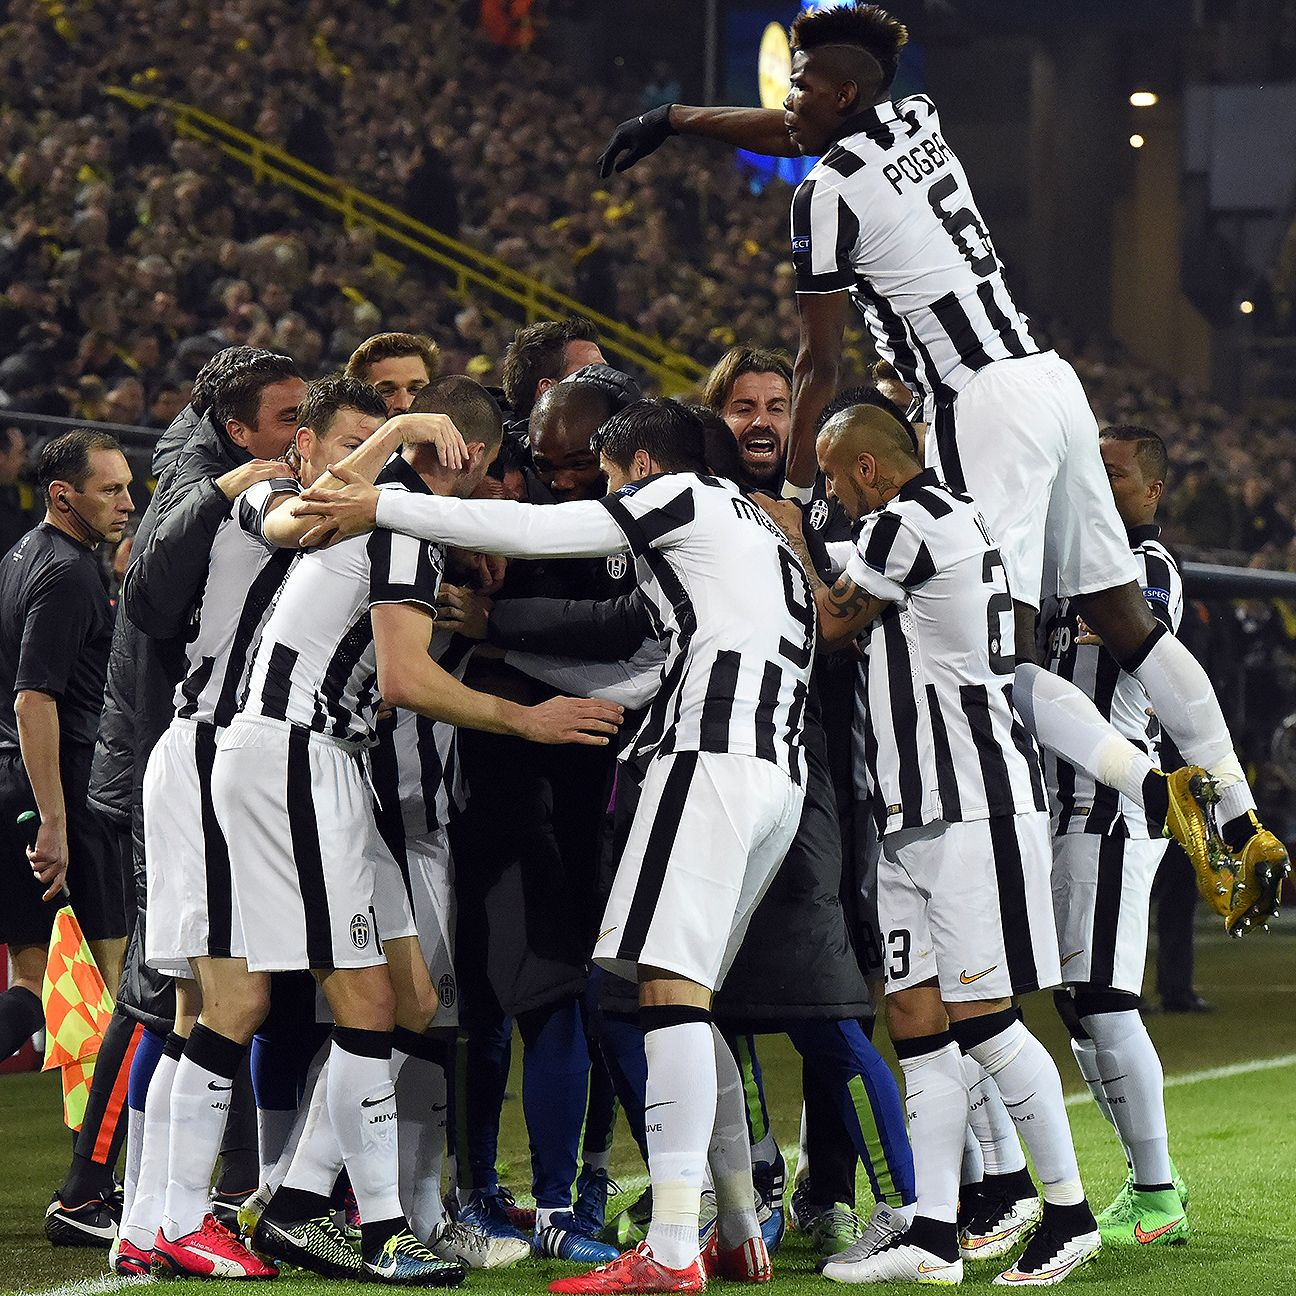 Passage to the Champions League semifinals would provide Juventus with a major financial boost.